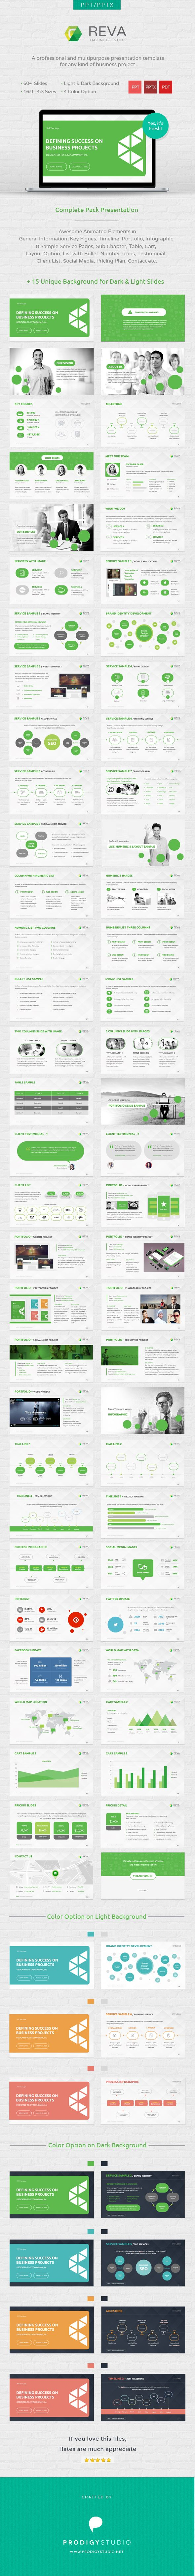 Reva Presentation Template is a part of our complete branding solution. This template is suitable for multi purpose business presentation such as IDENTITY presentation PHOTOGRAPHY presentation, Business presentation, SEO presentation, PRINT & DESIGN presentation, MOBILE APPLICATION presentation or many more.     Download here: http://graphicriver.net/item/reva-multi-purpose-presentation-template/6976012?ref=prodigystudio